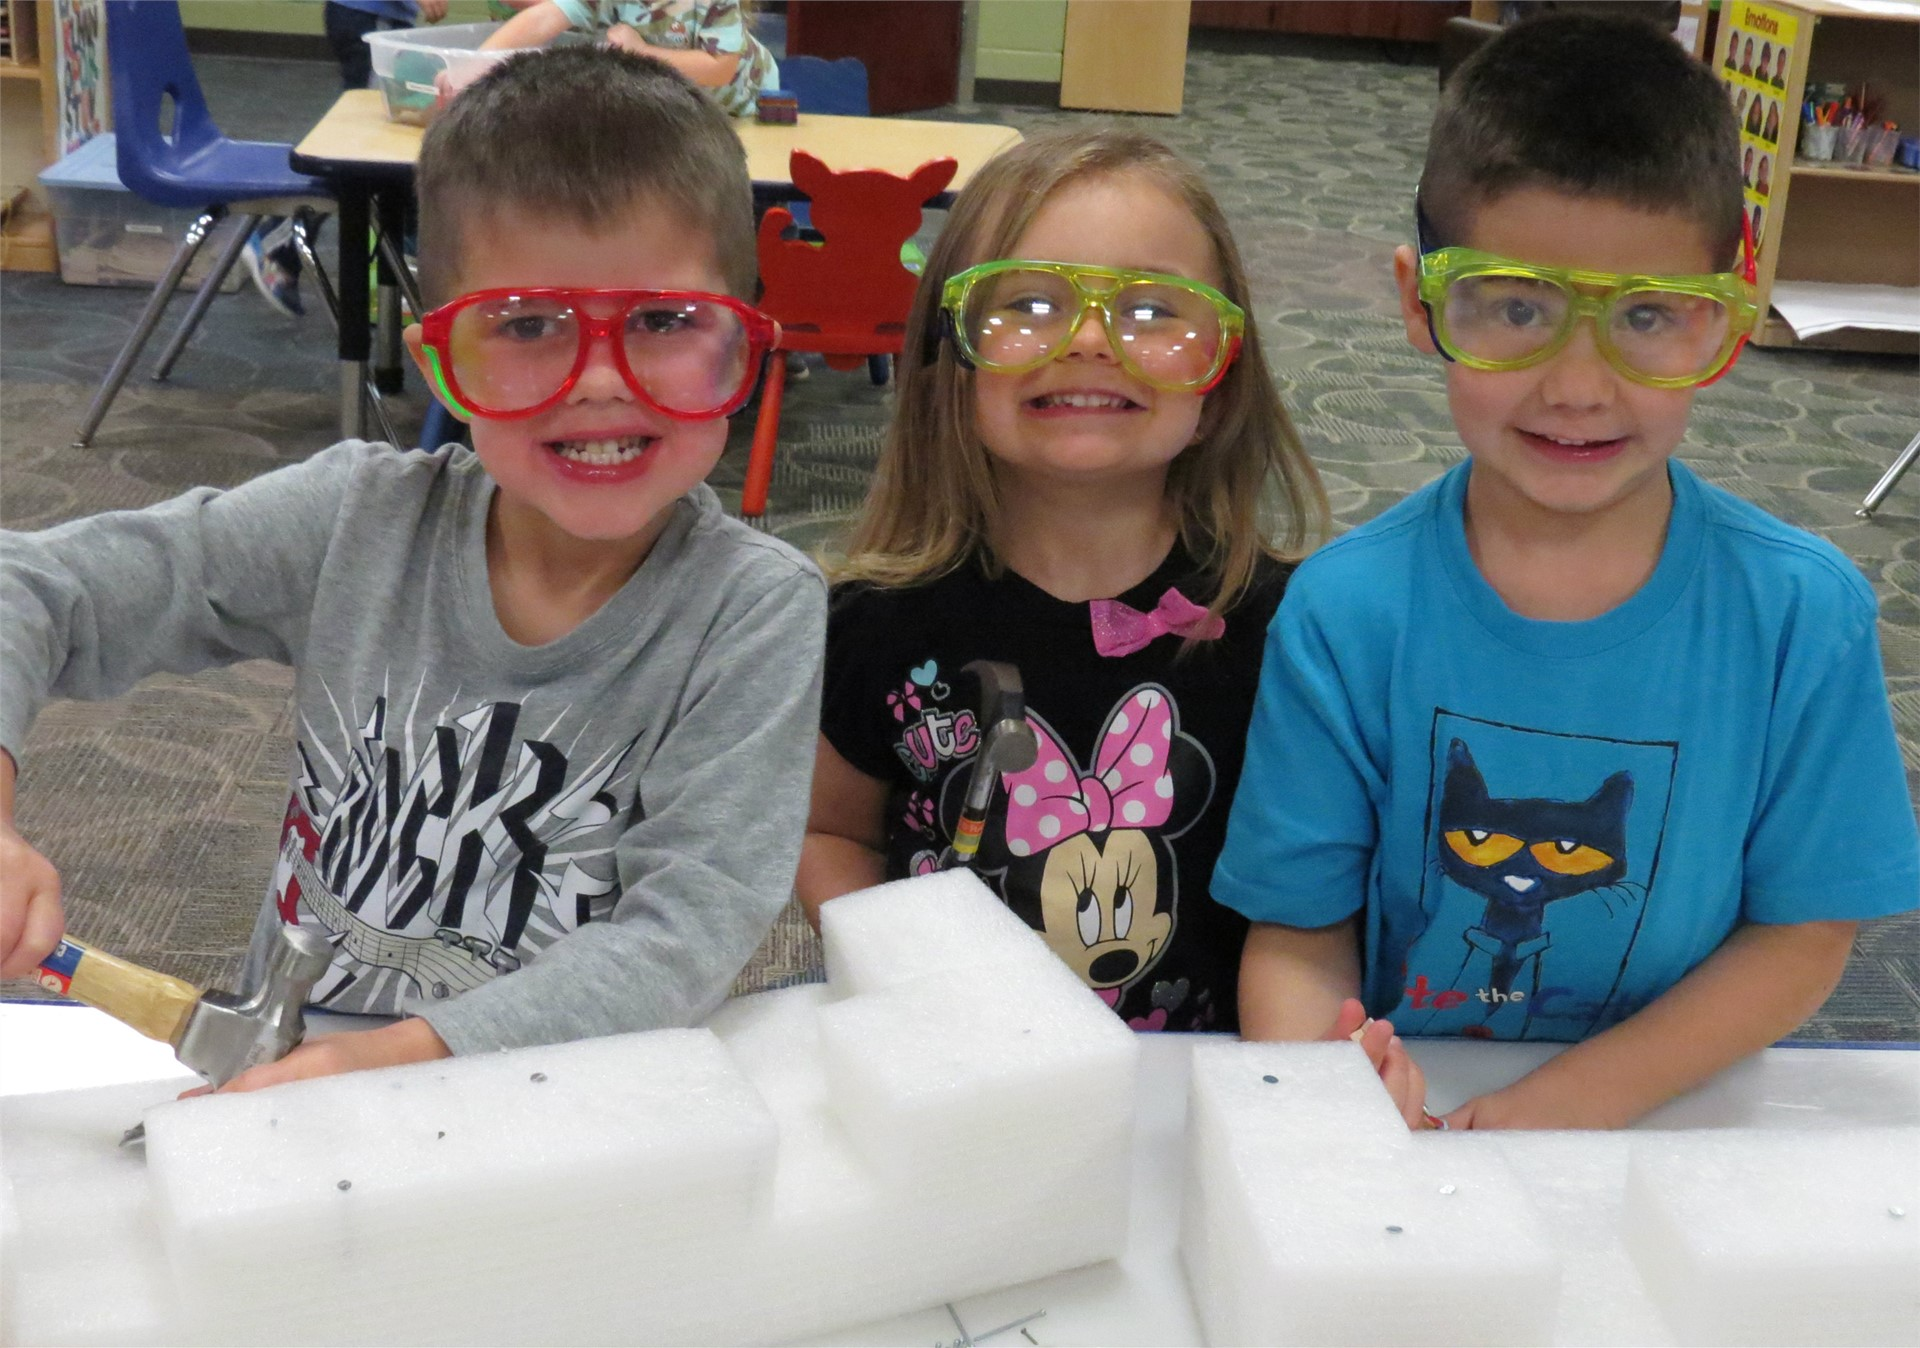 Smiling preschoolers wearing big, colorful safety glasses